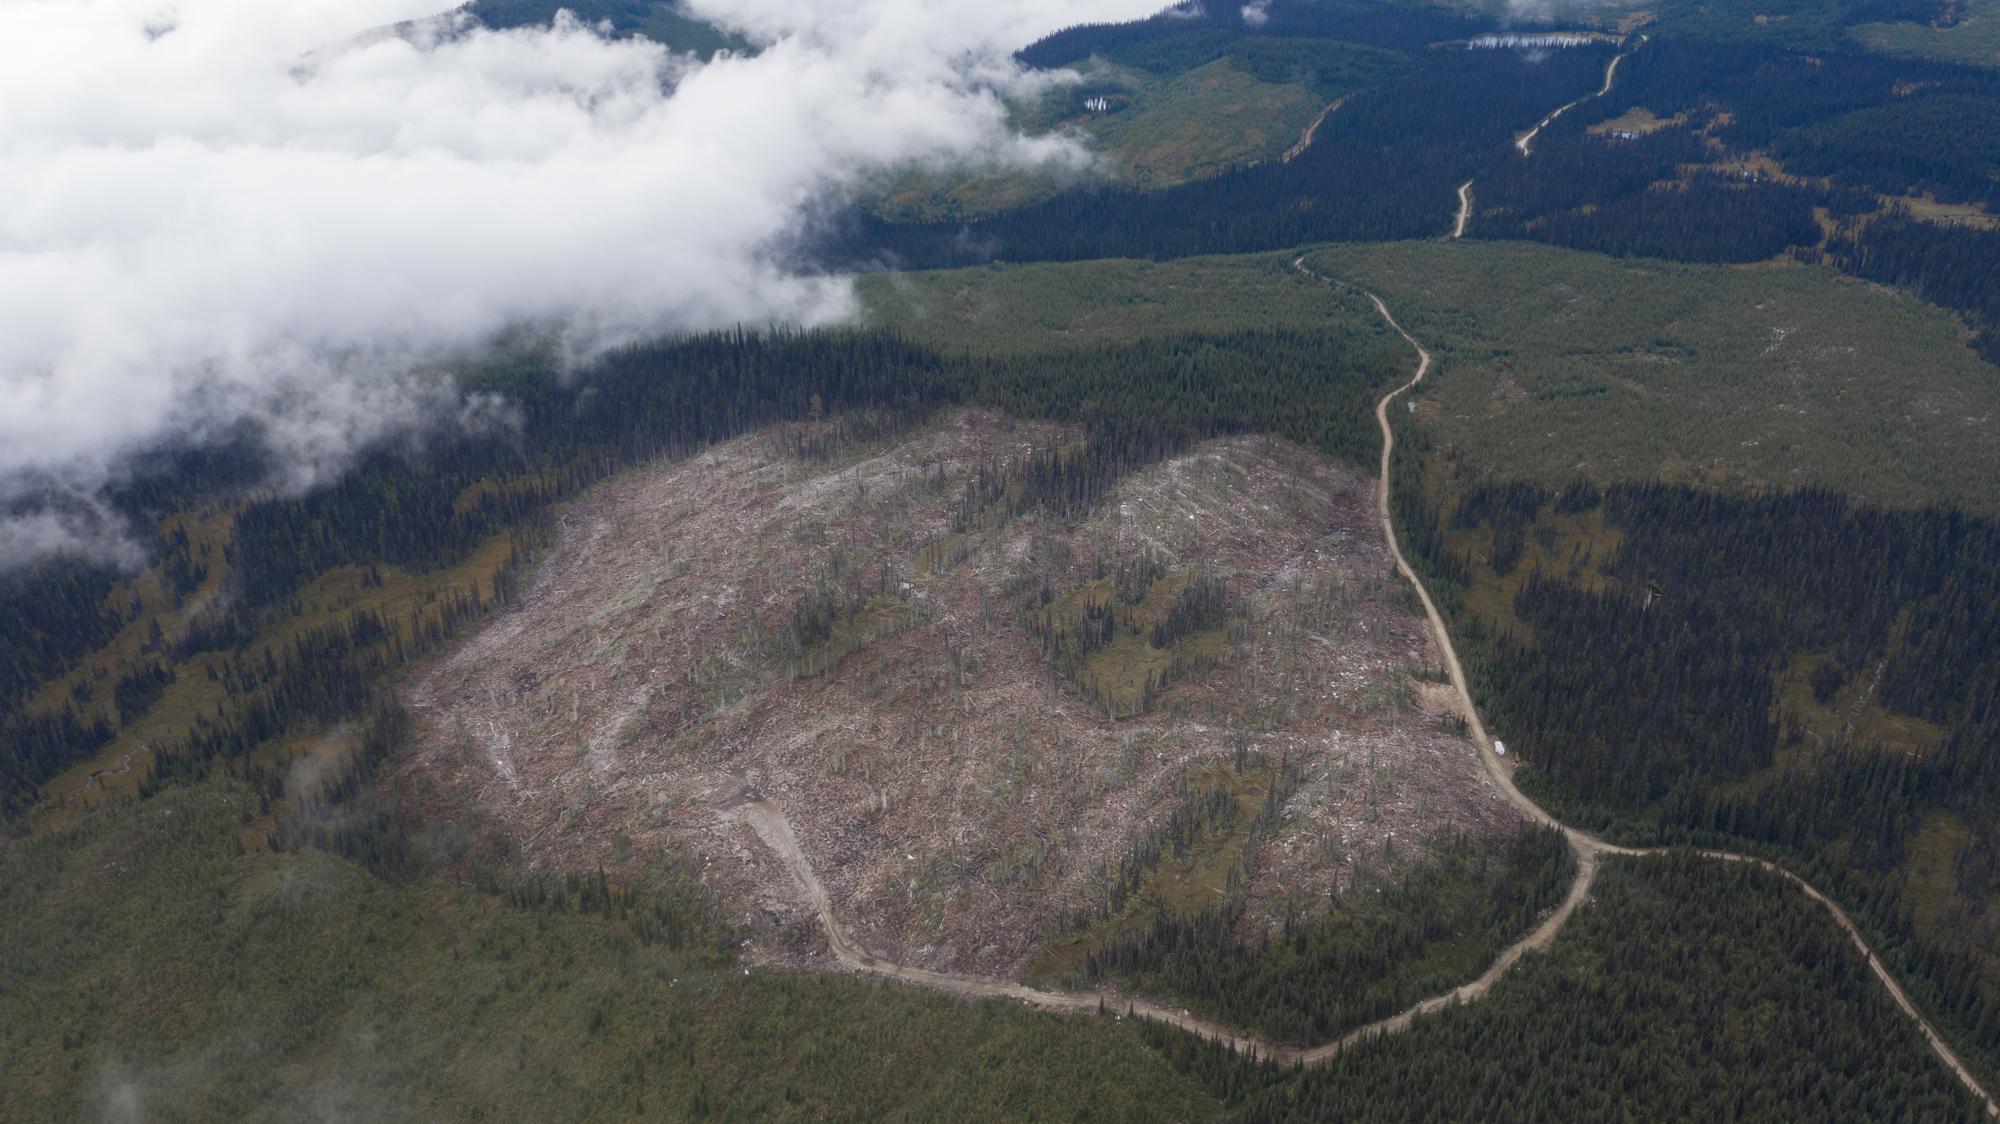 A fresh clearcut in federally-mapped, core critical habitat of endangered mountain caribou - Wells Gray/Thompson area. Photo credit: Wildlife Defence League/ Burning Hearts Media